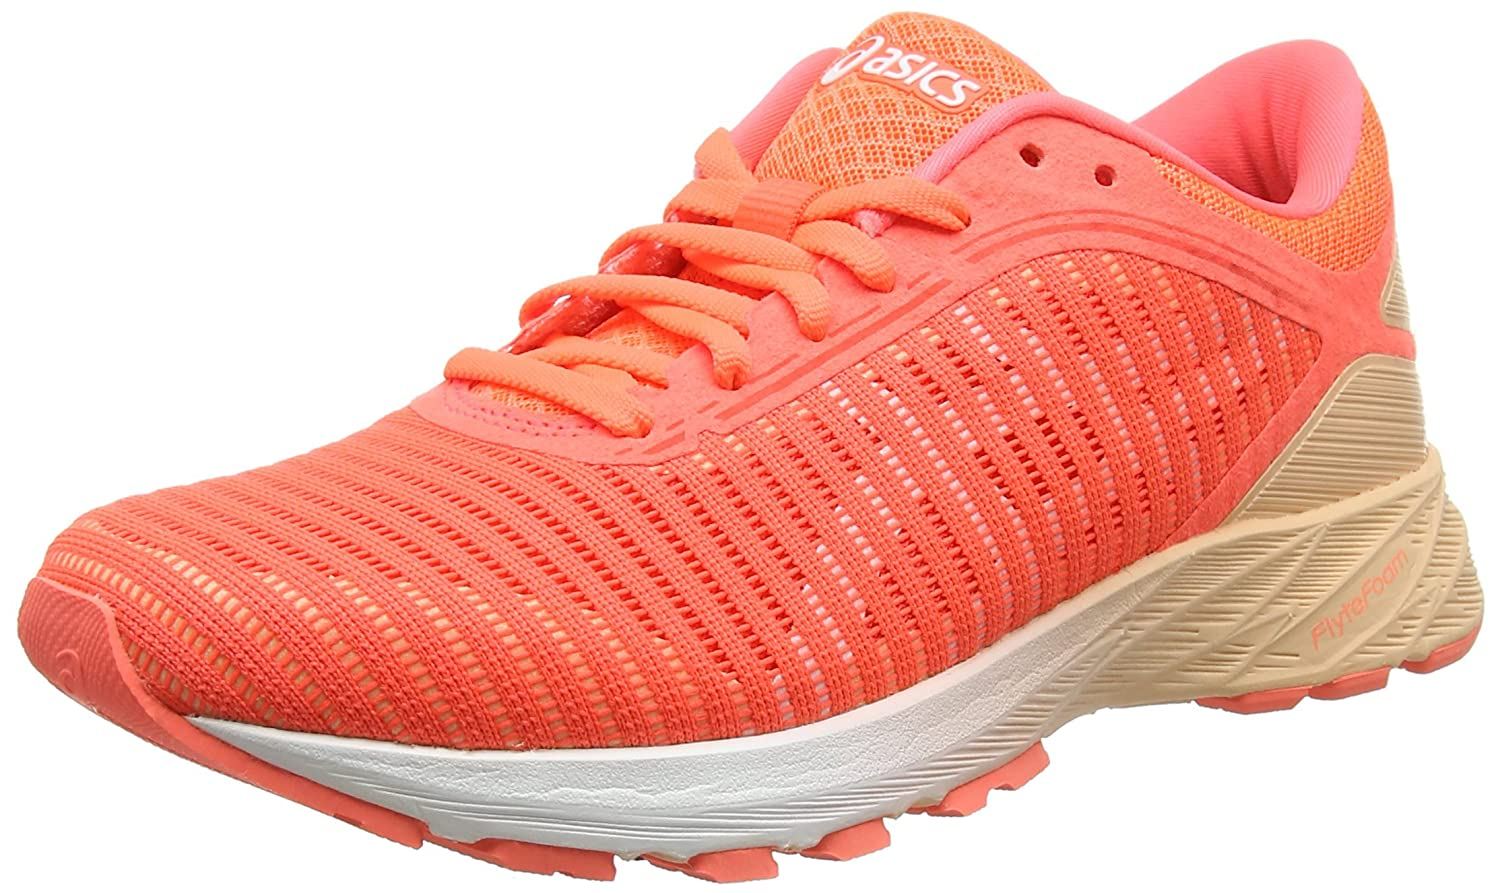 brand new c102a 705a0 ASICS Dynaflyte 2 Womens Running Trainers T7D5N Sneakers Shoes